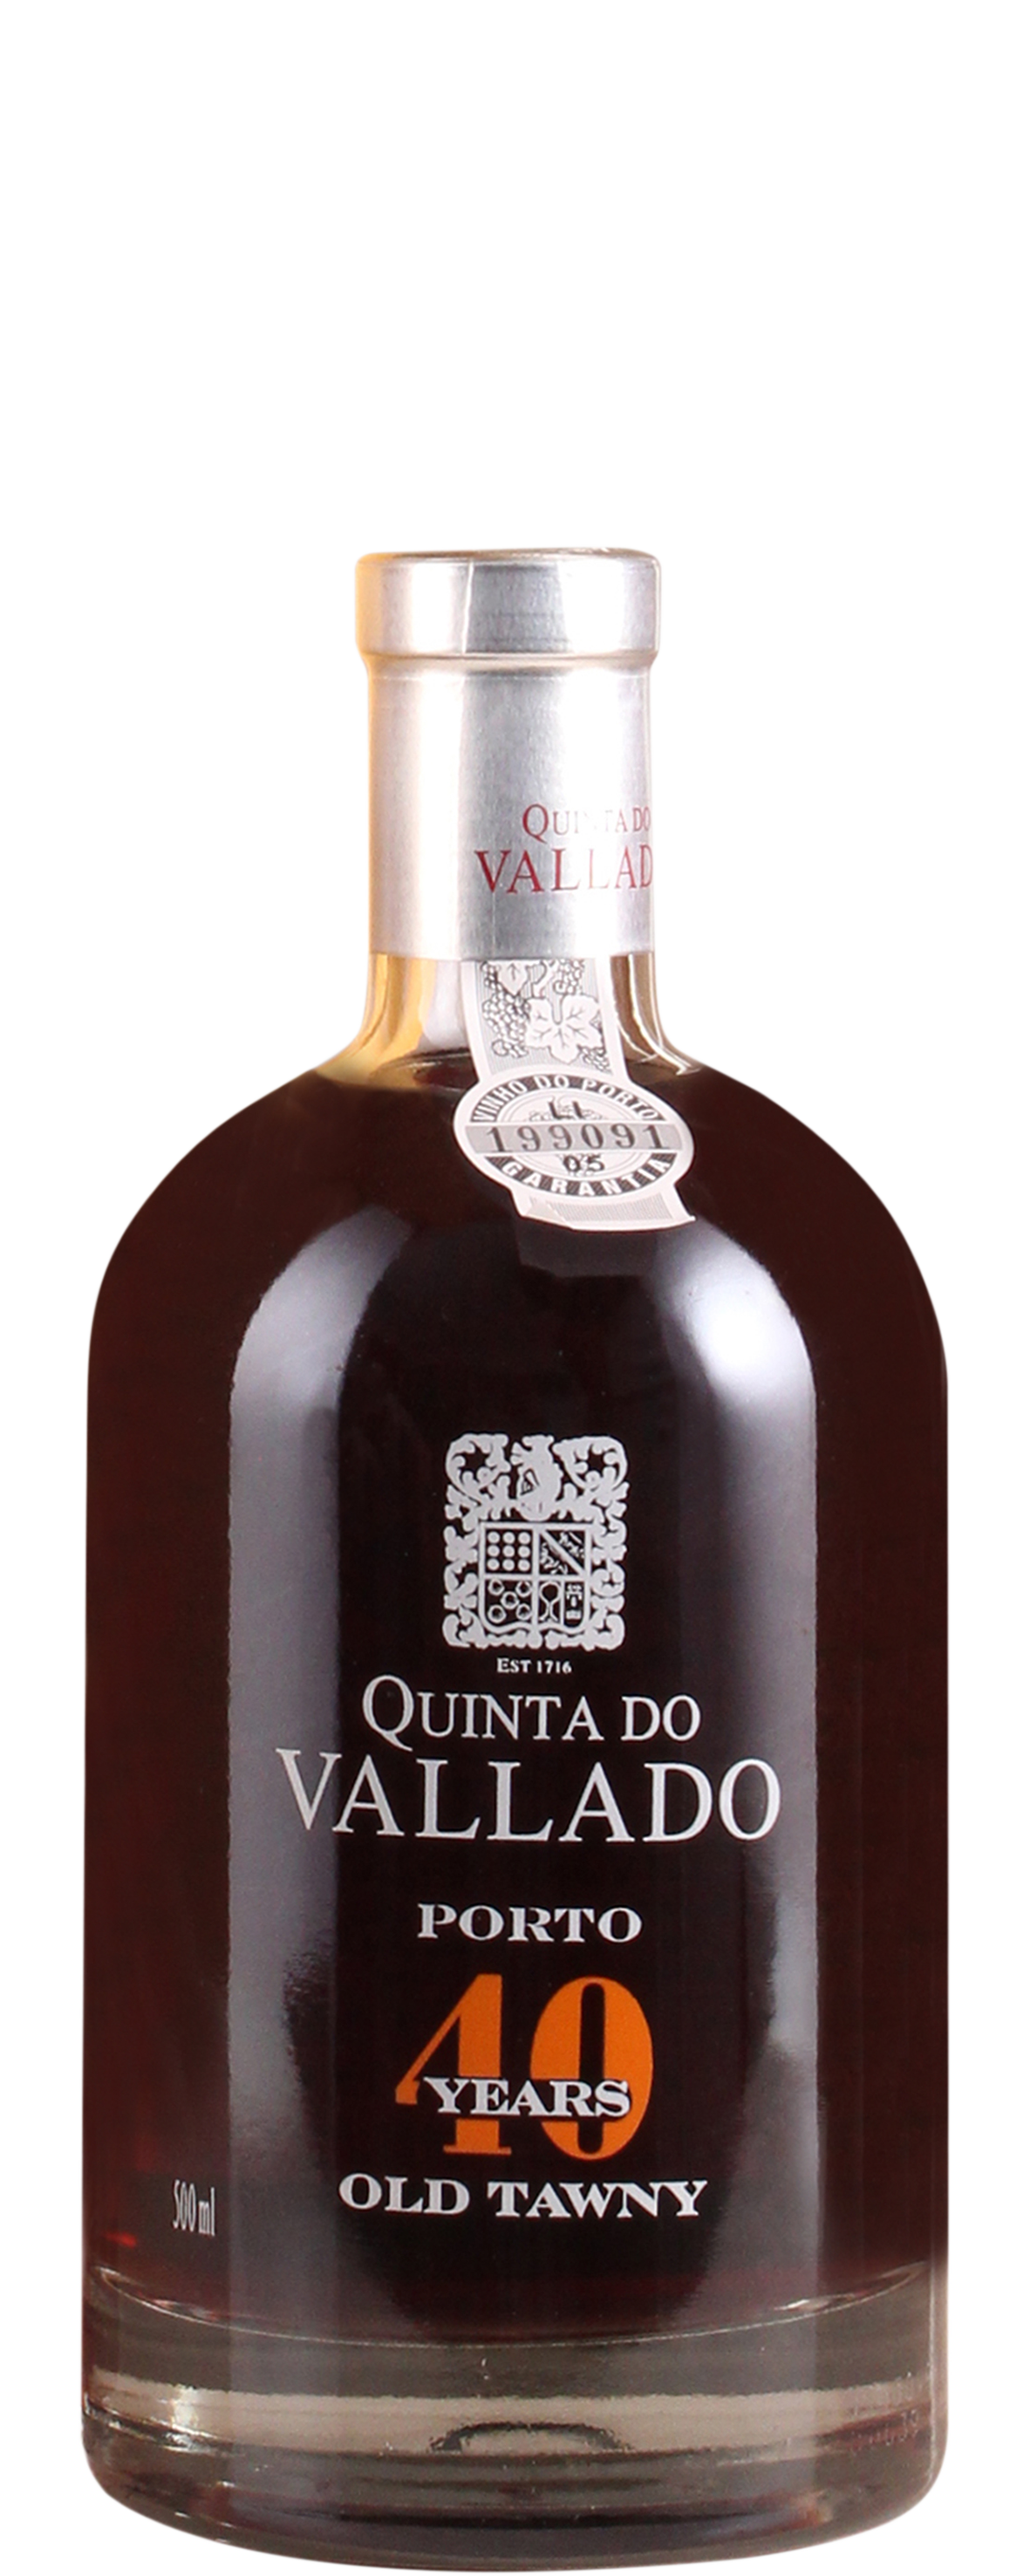 40-years Old Tawny Port, 20.5% vol.